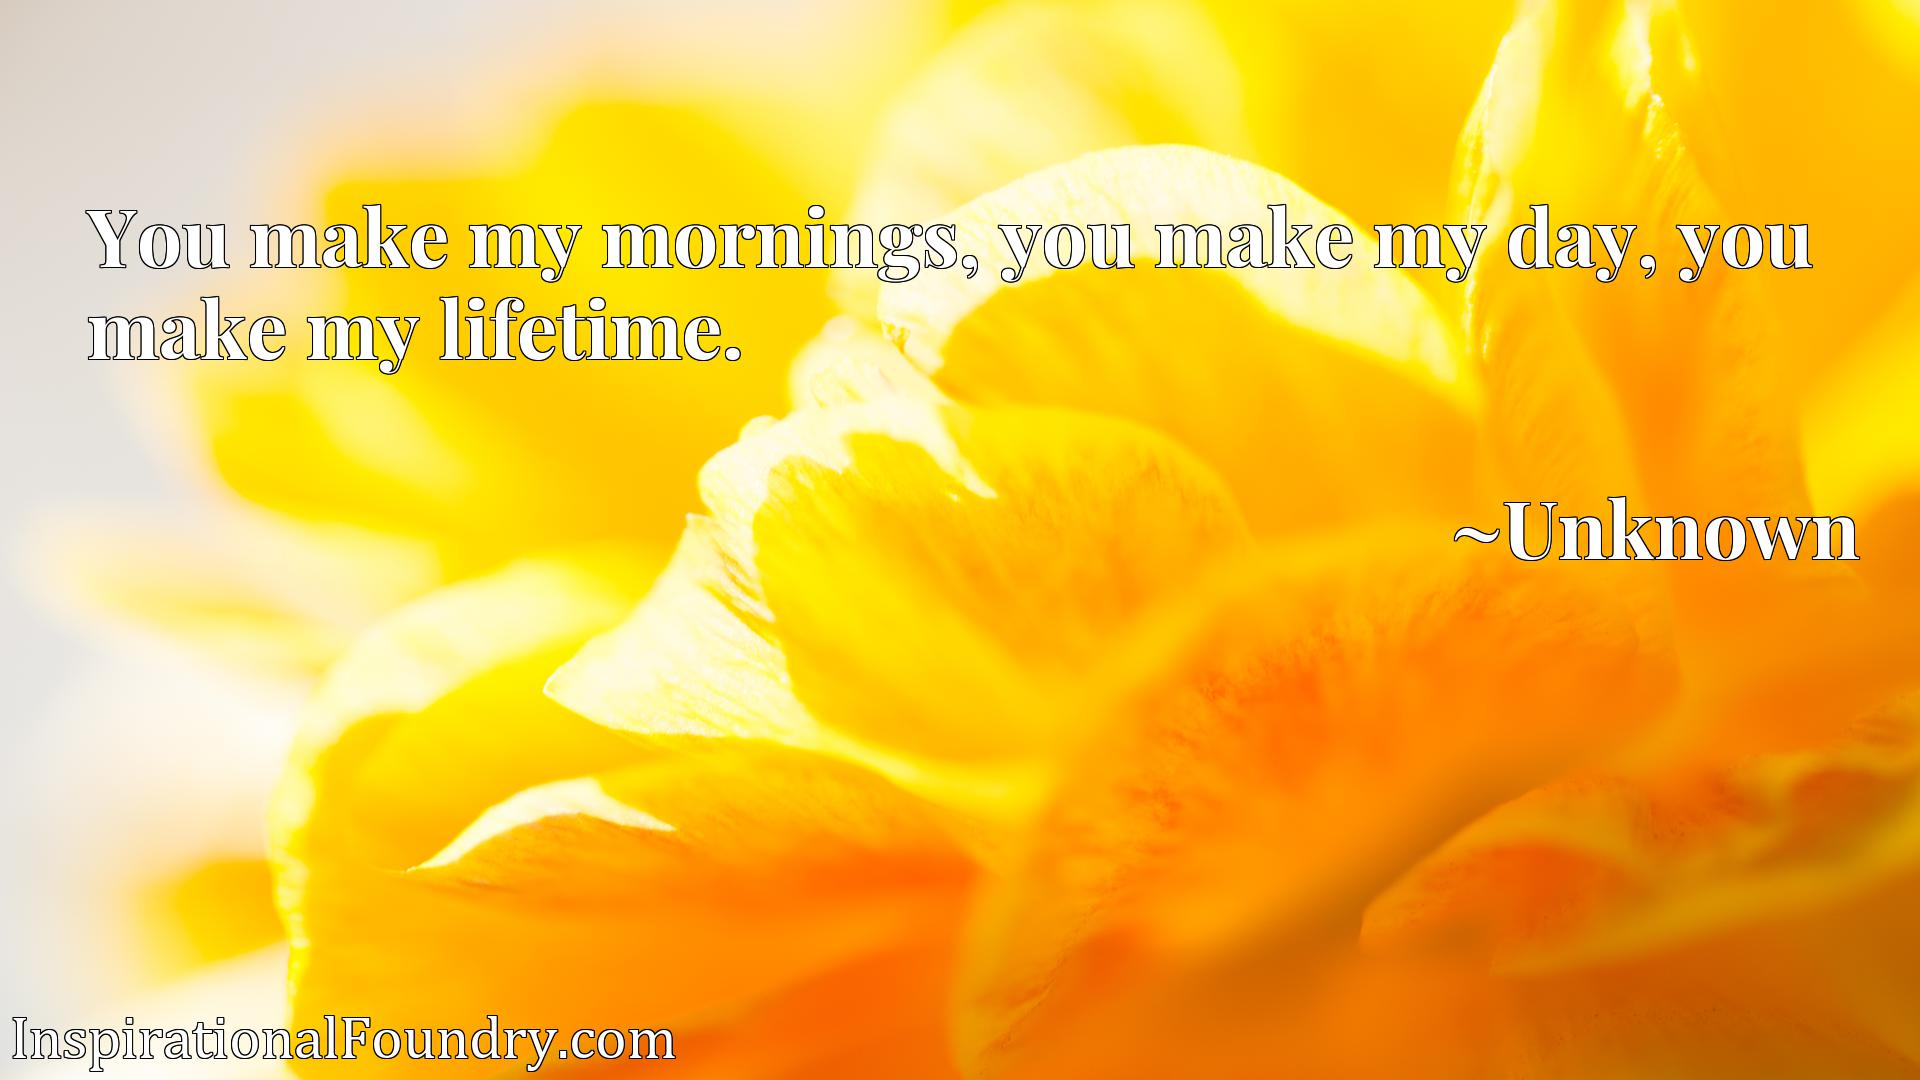 Quote Picture :You make my mornings, you make my day, you make my lifetime.